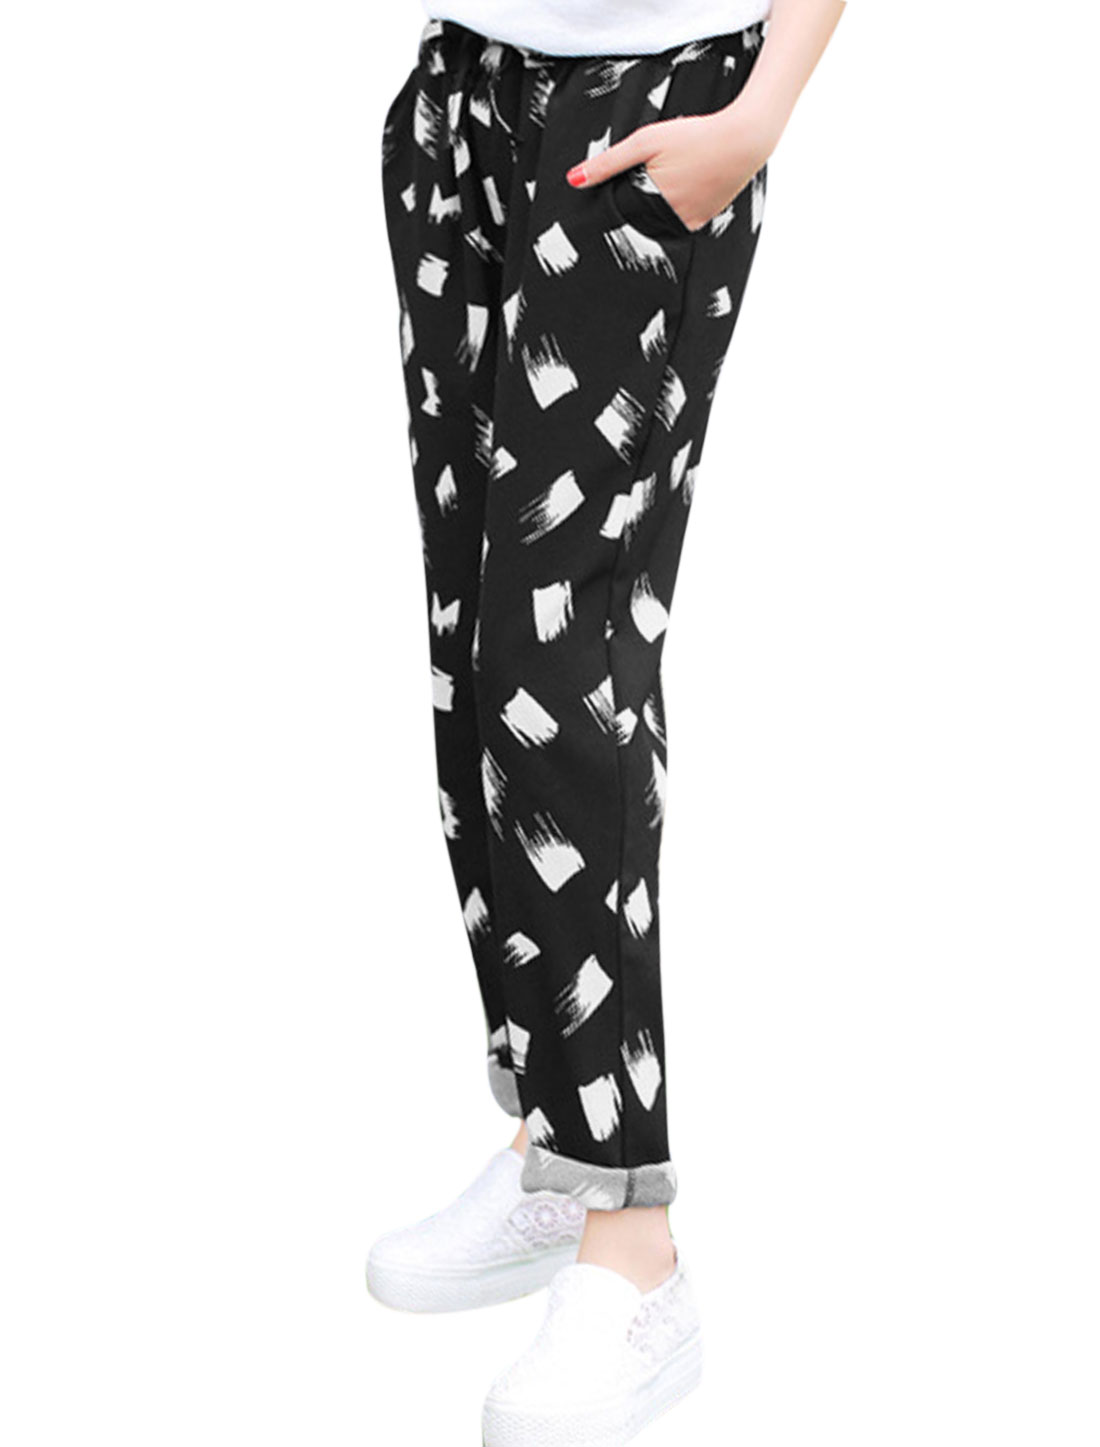 Lady Drawstring Waist Novelty Prints Cropped Pants Black XS